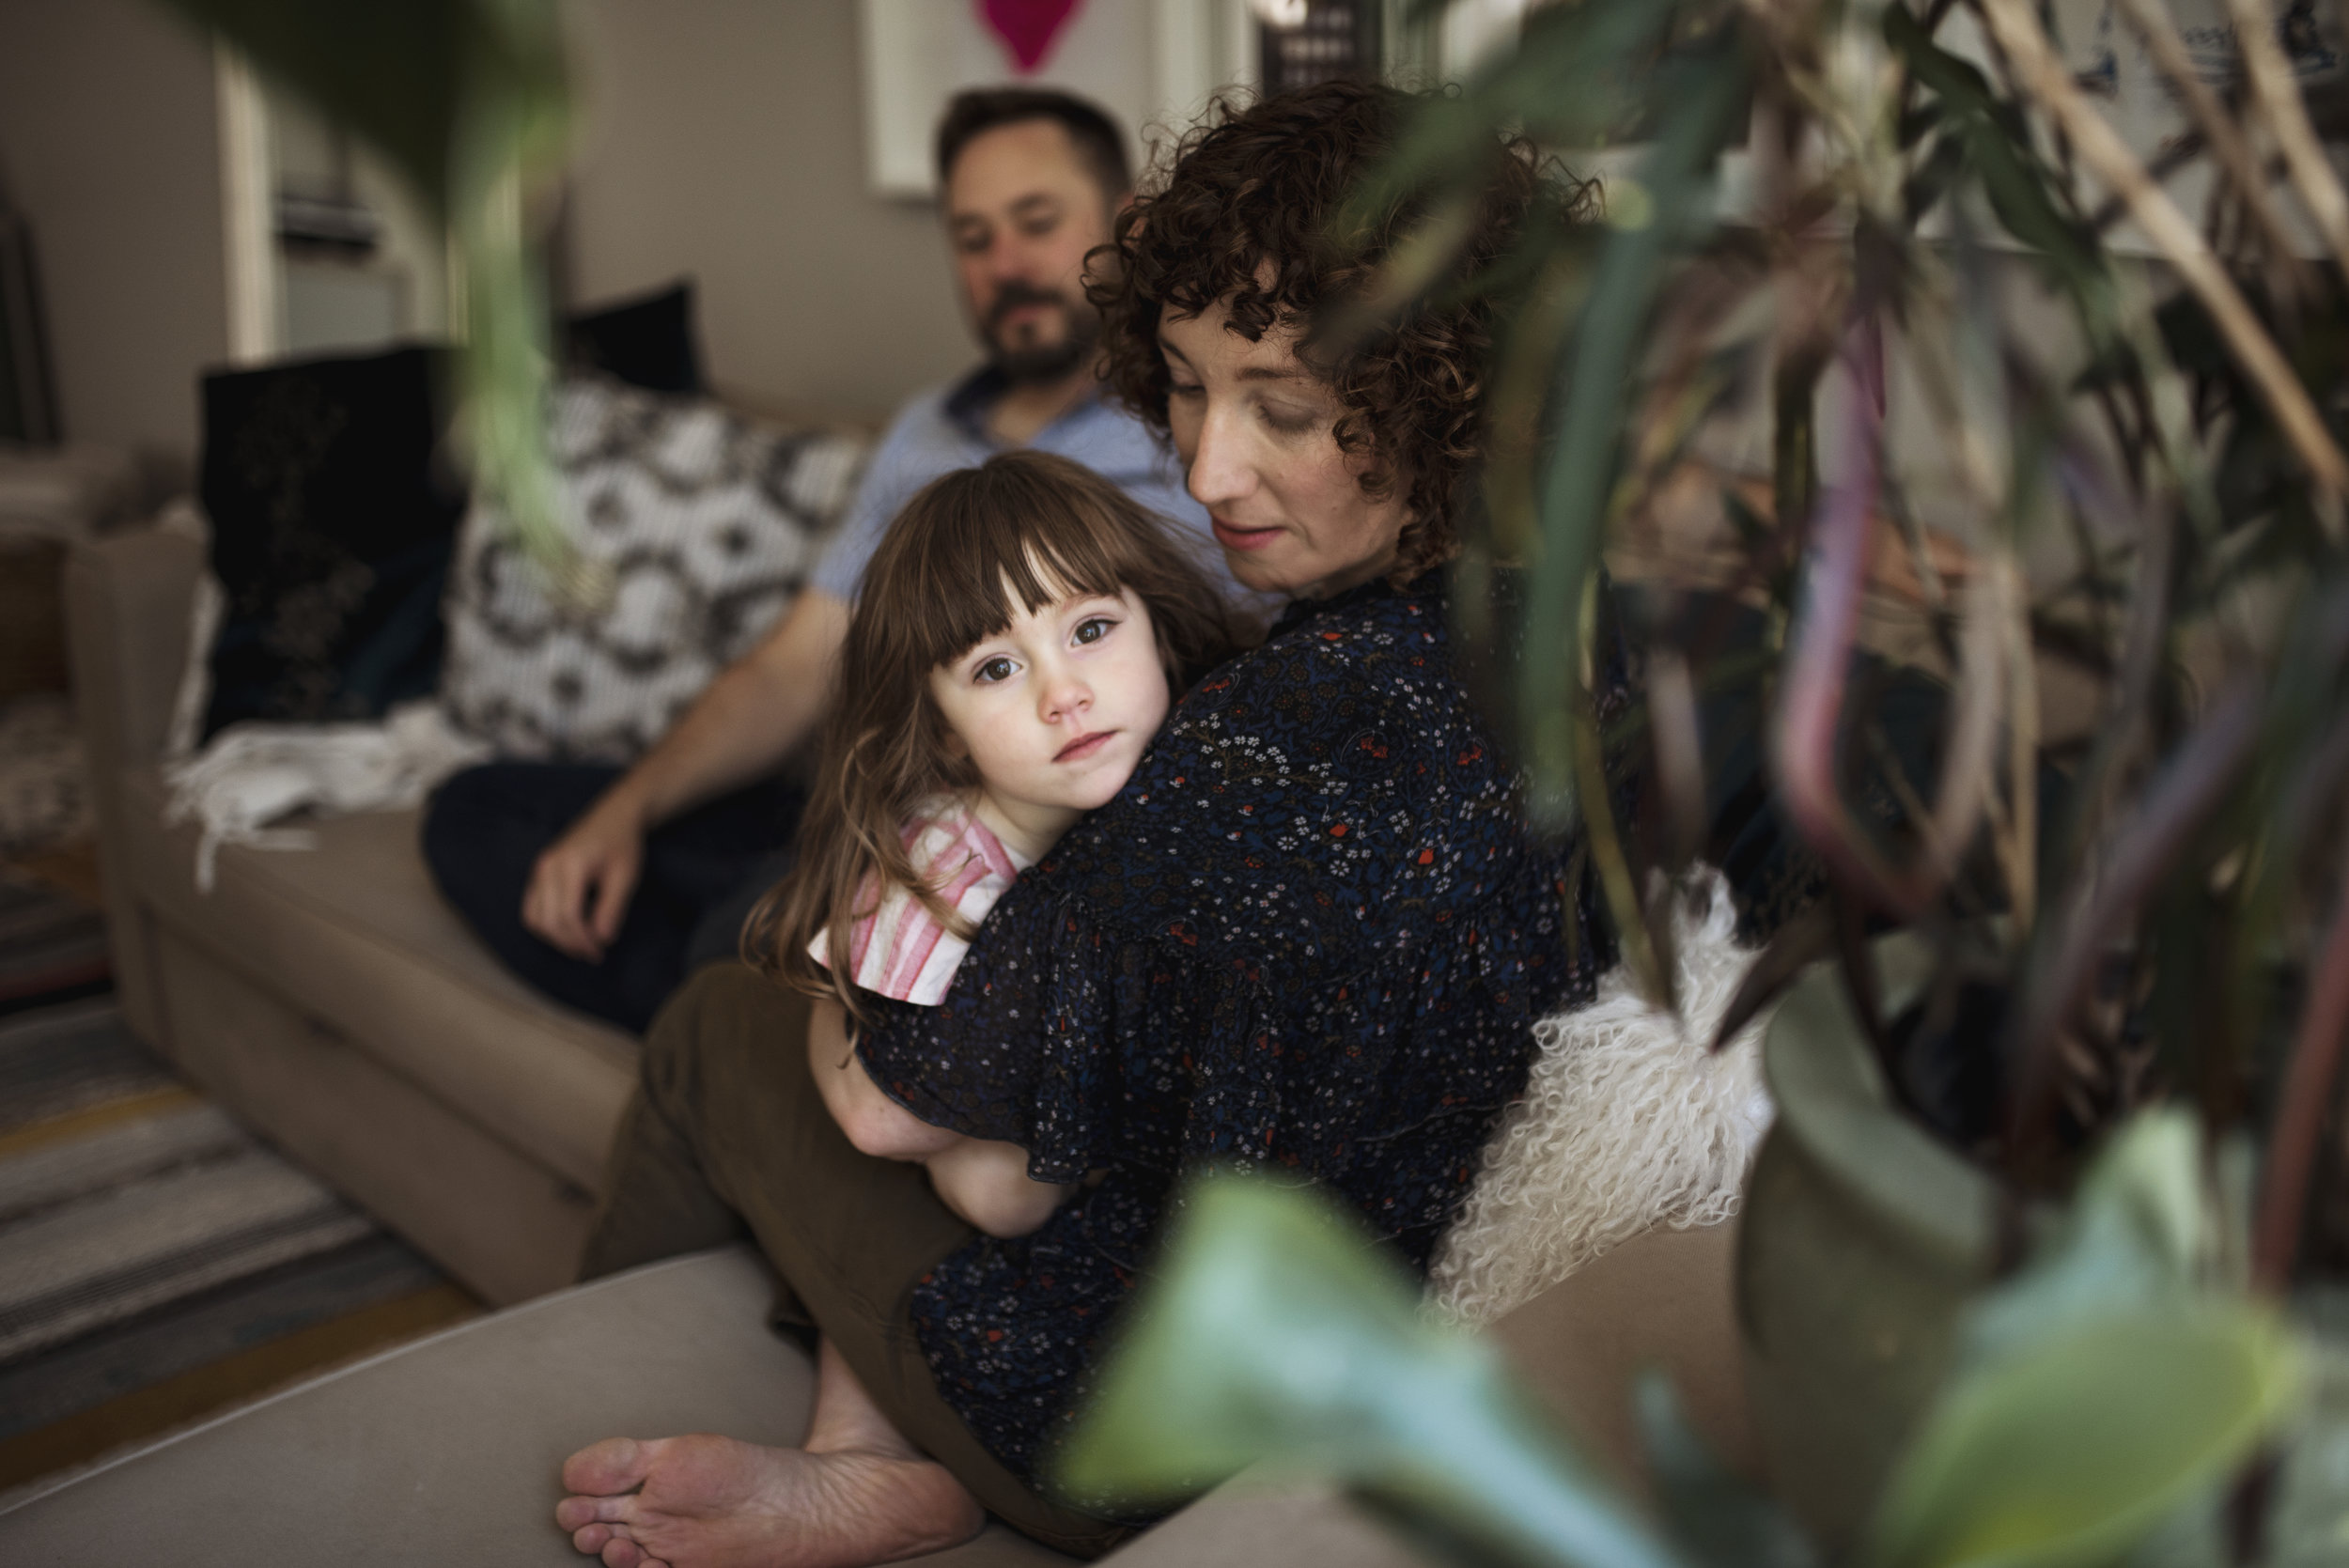 Everett family photographer parents on couch with daughter